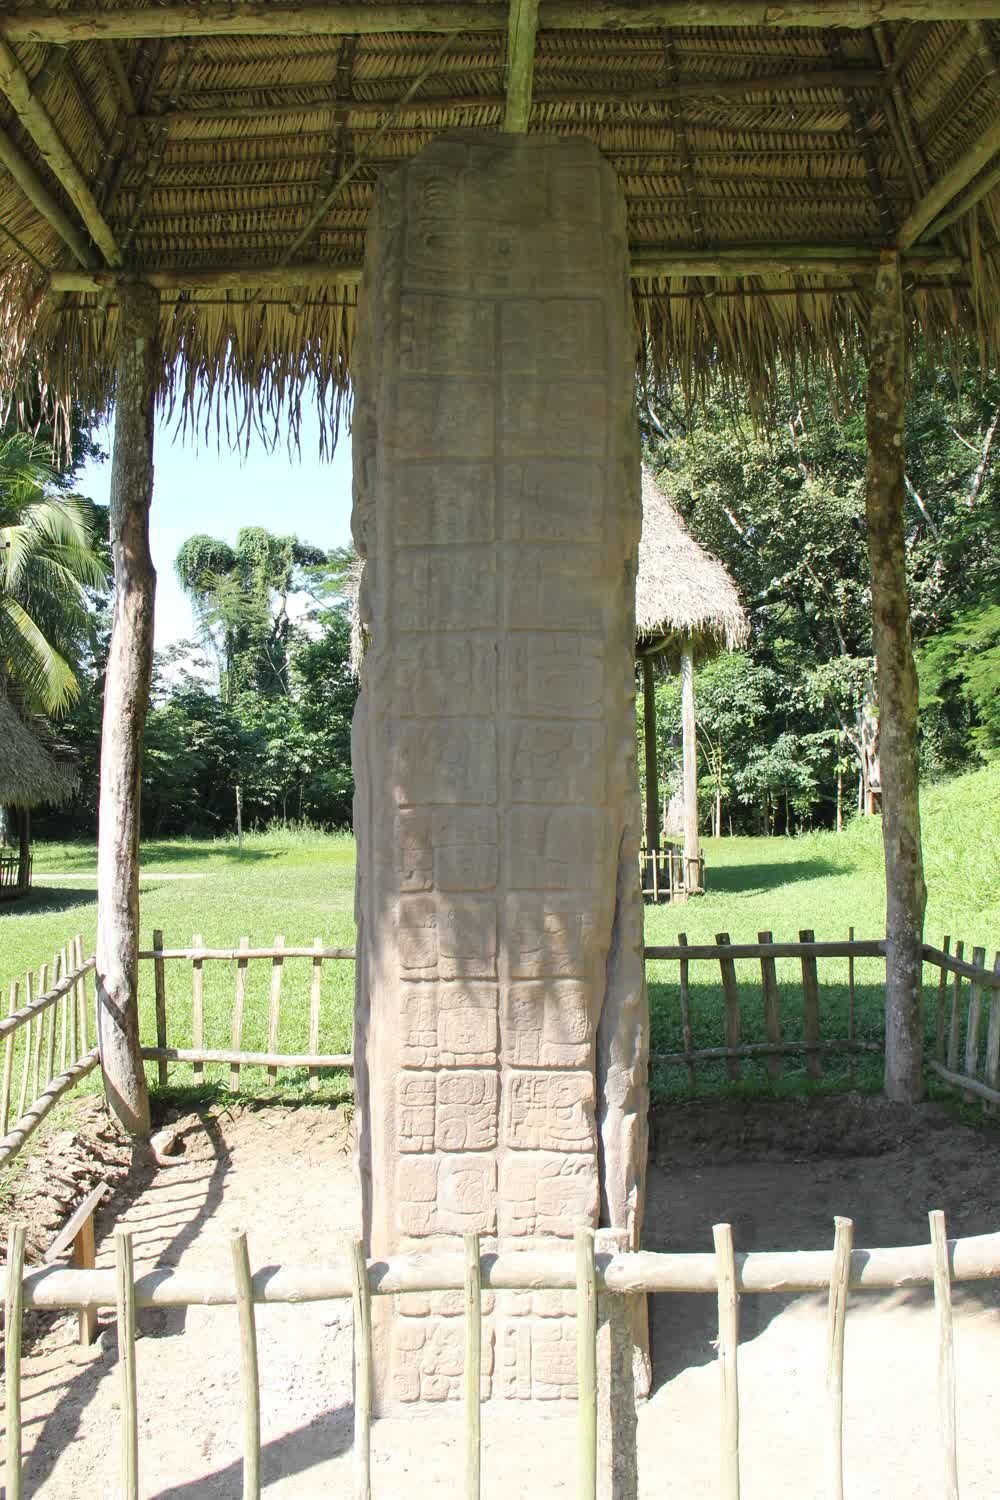 A stone model from Quirigua Guatemala